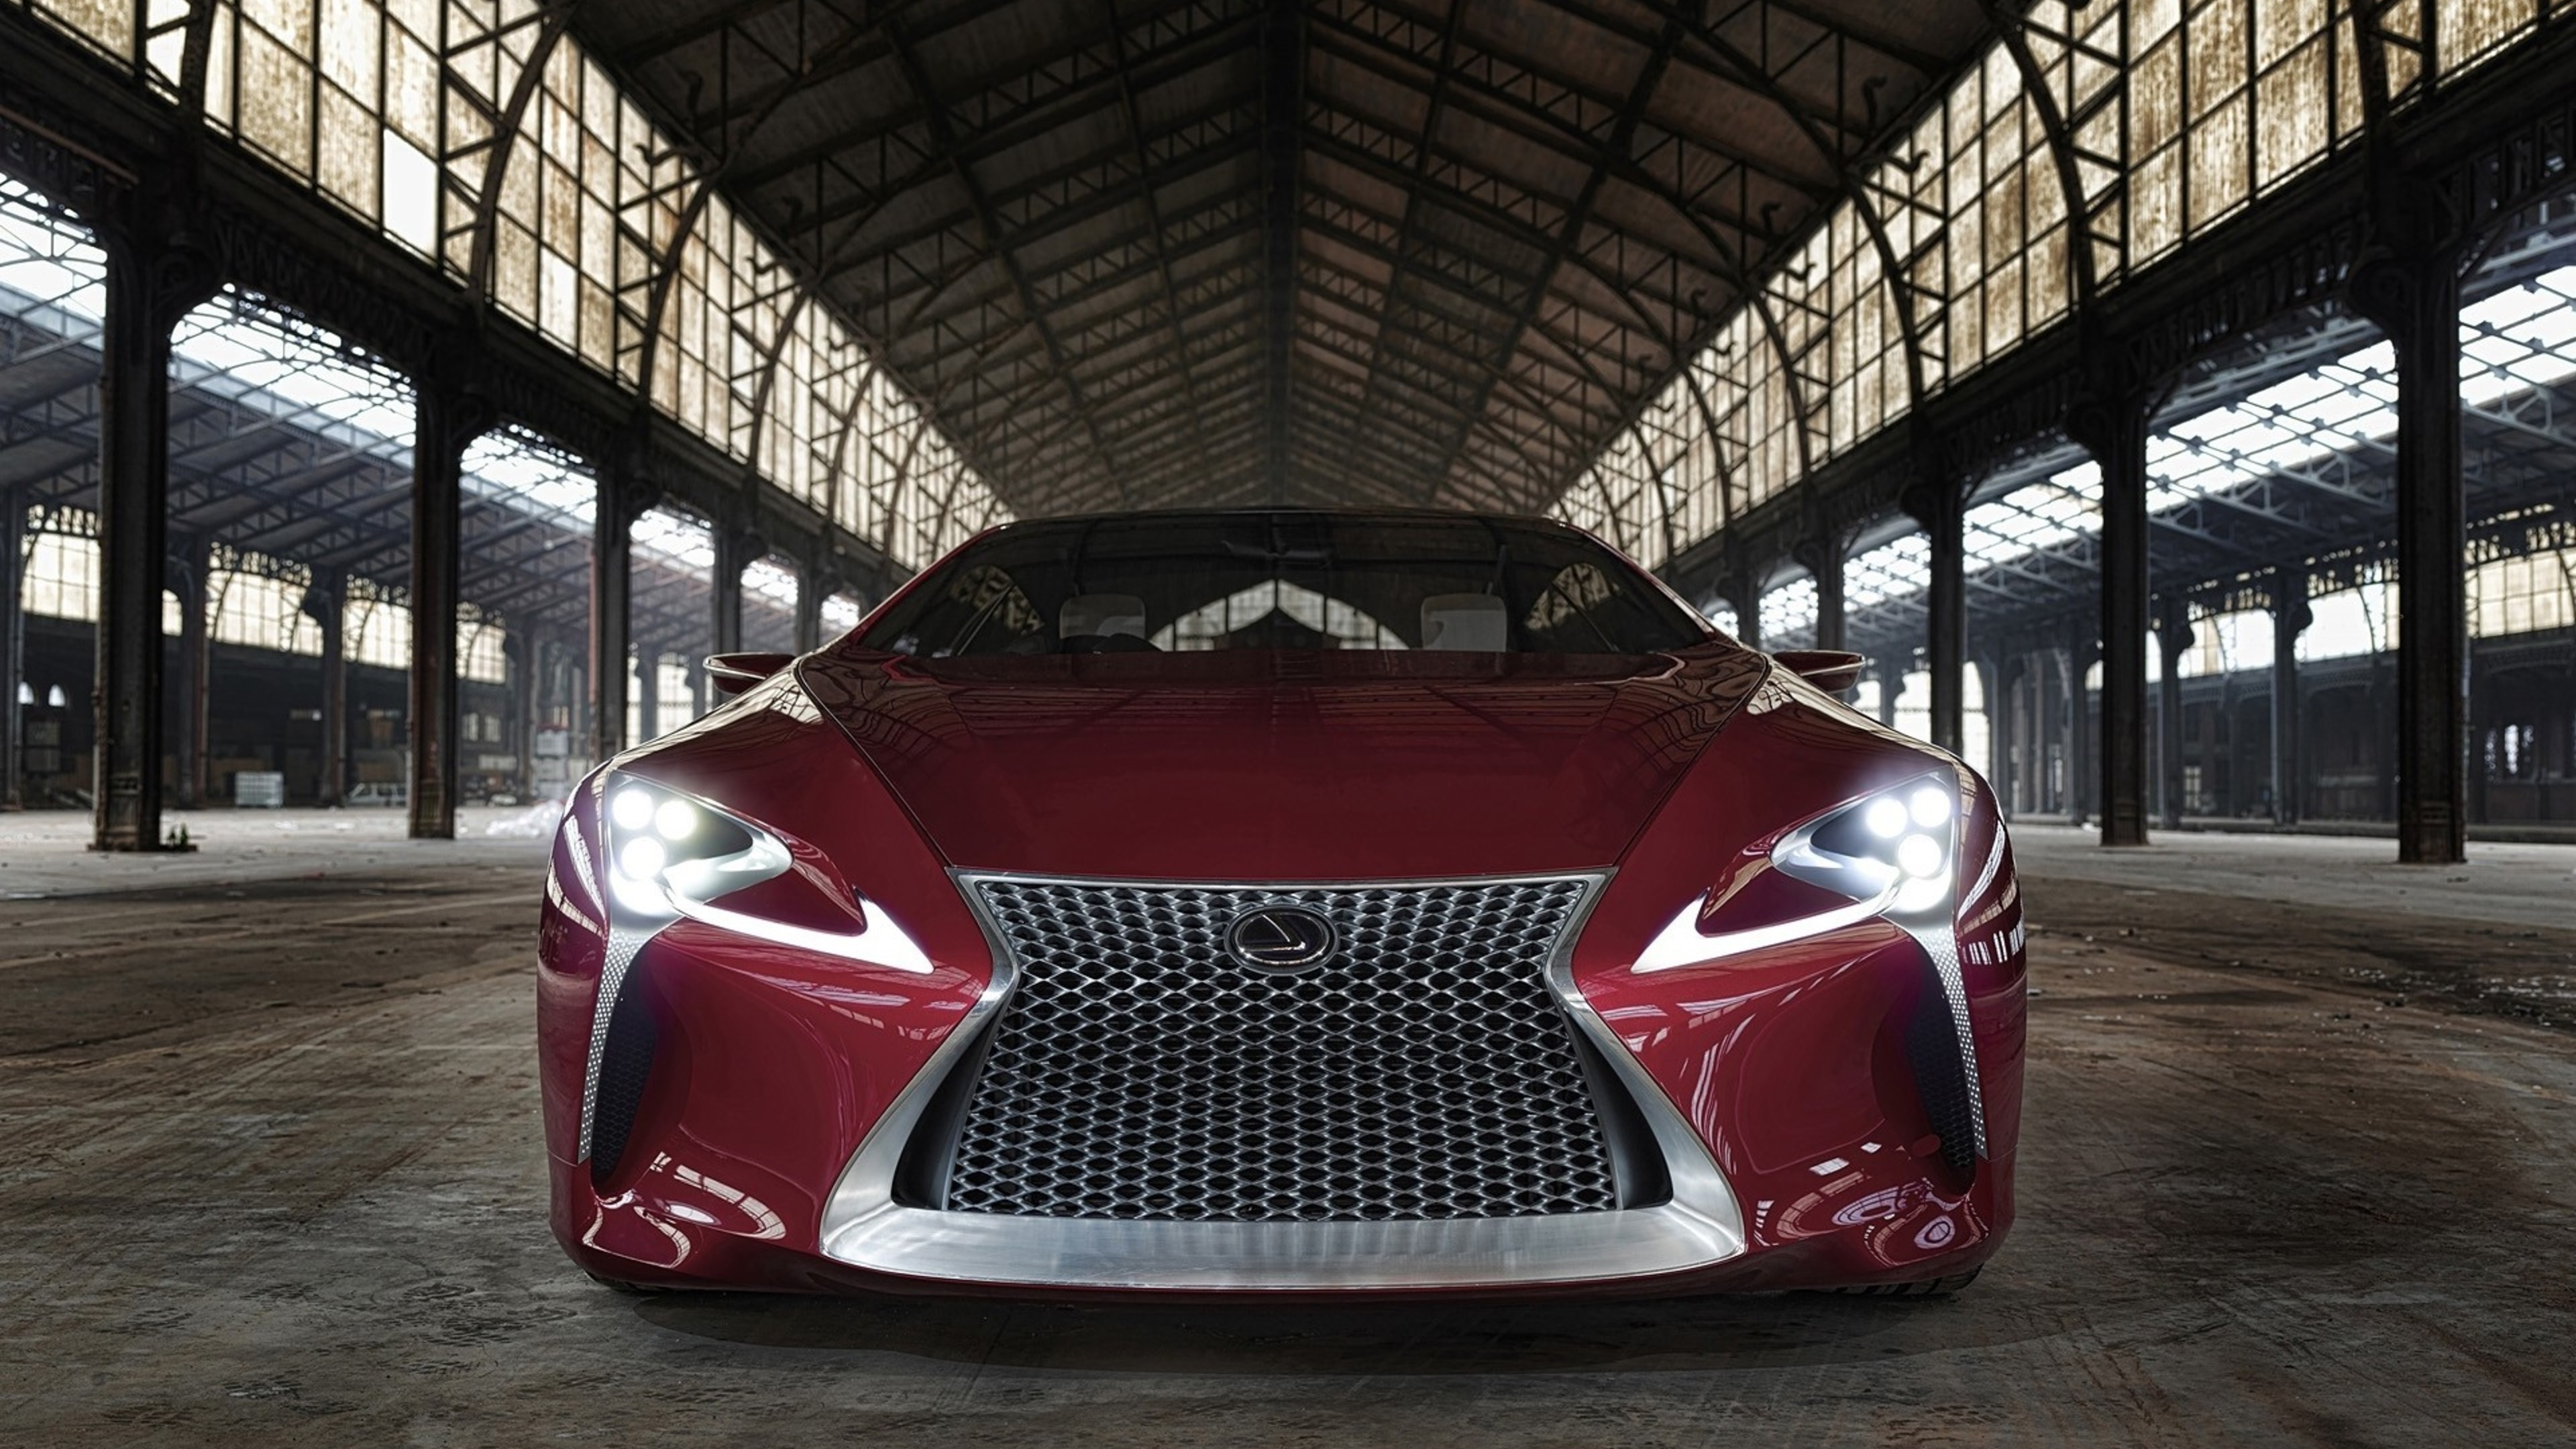 2106 Lexus Lc 500 Hd Cars 4k Wallpapers Images Backgrounds